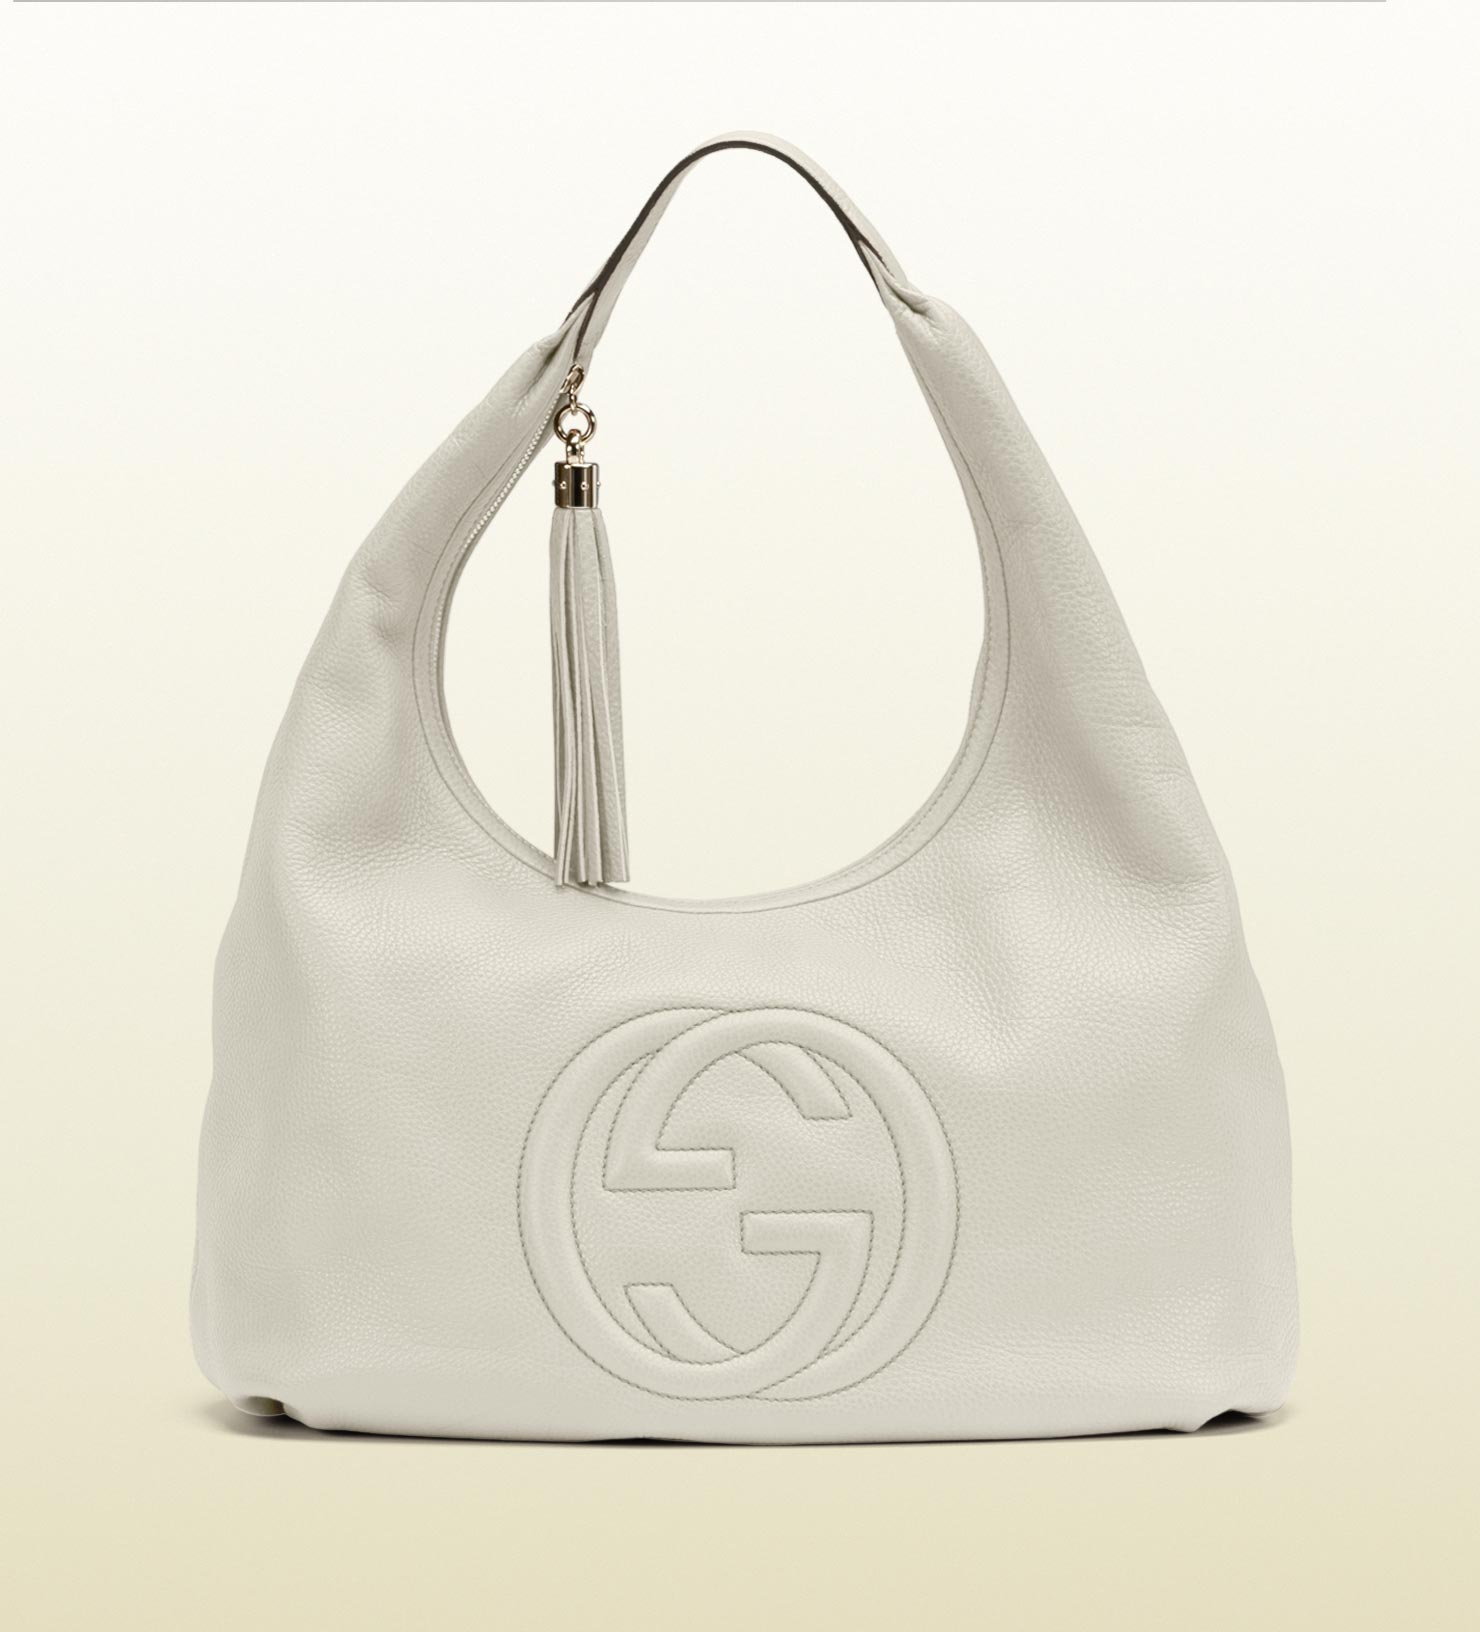 4b37c690cdb8 Lyst - Gucci Soho Hobo in Natural